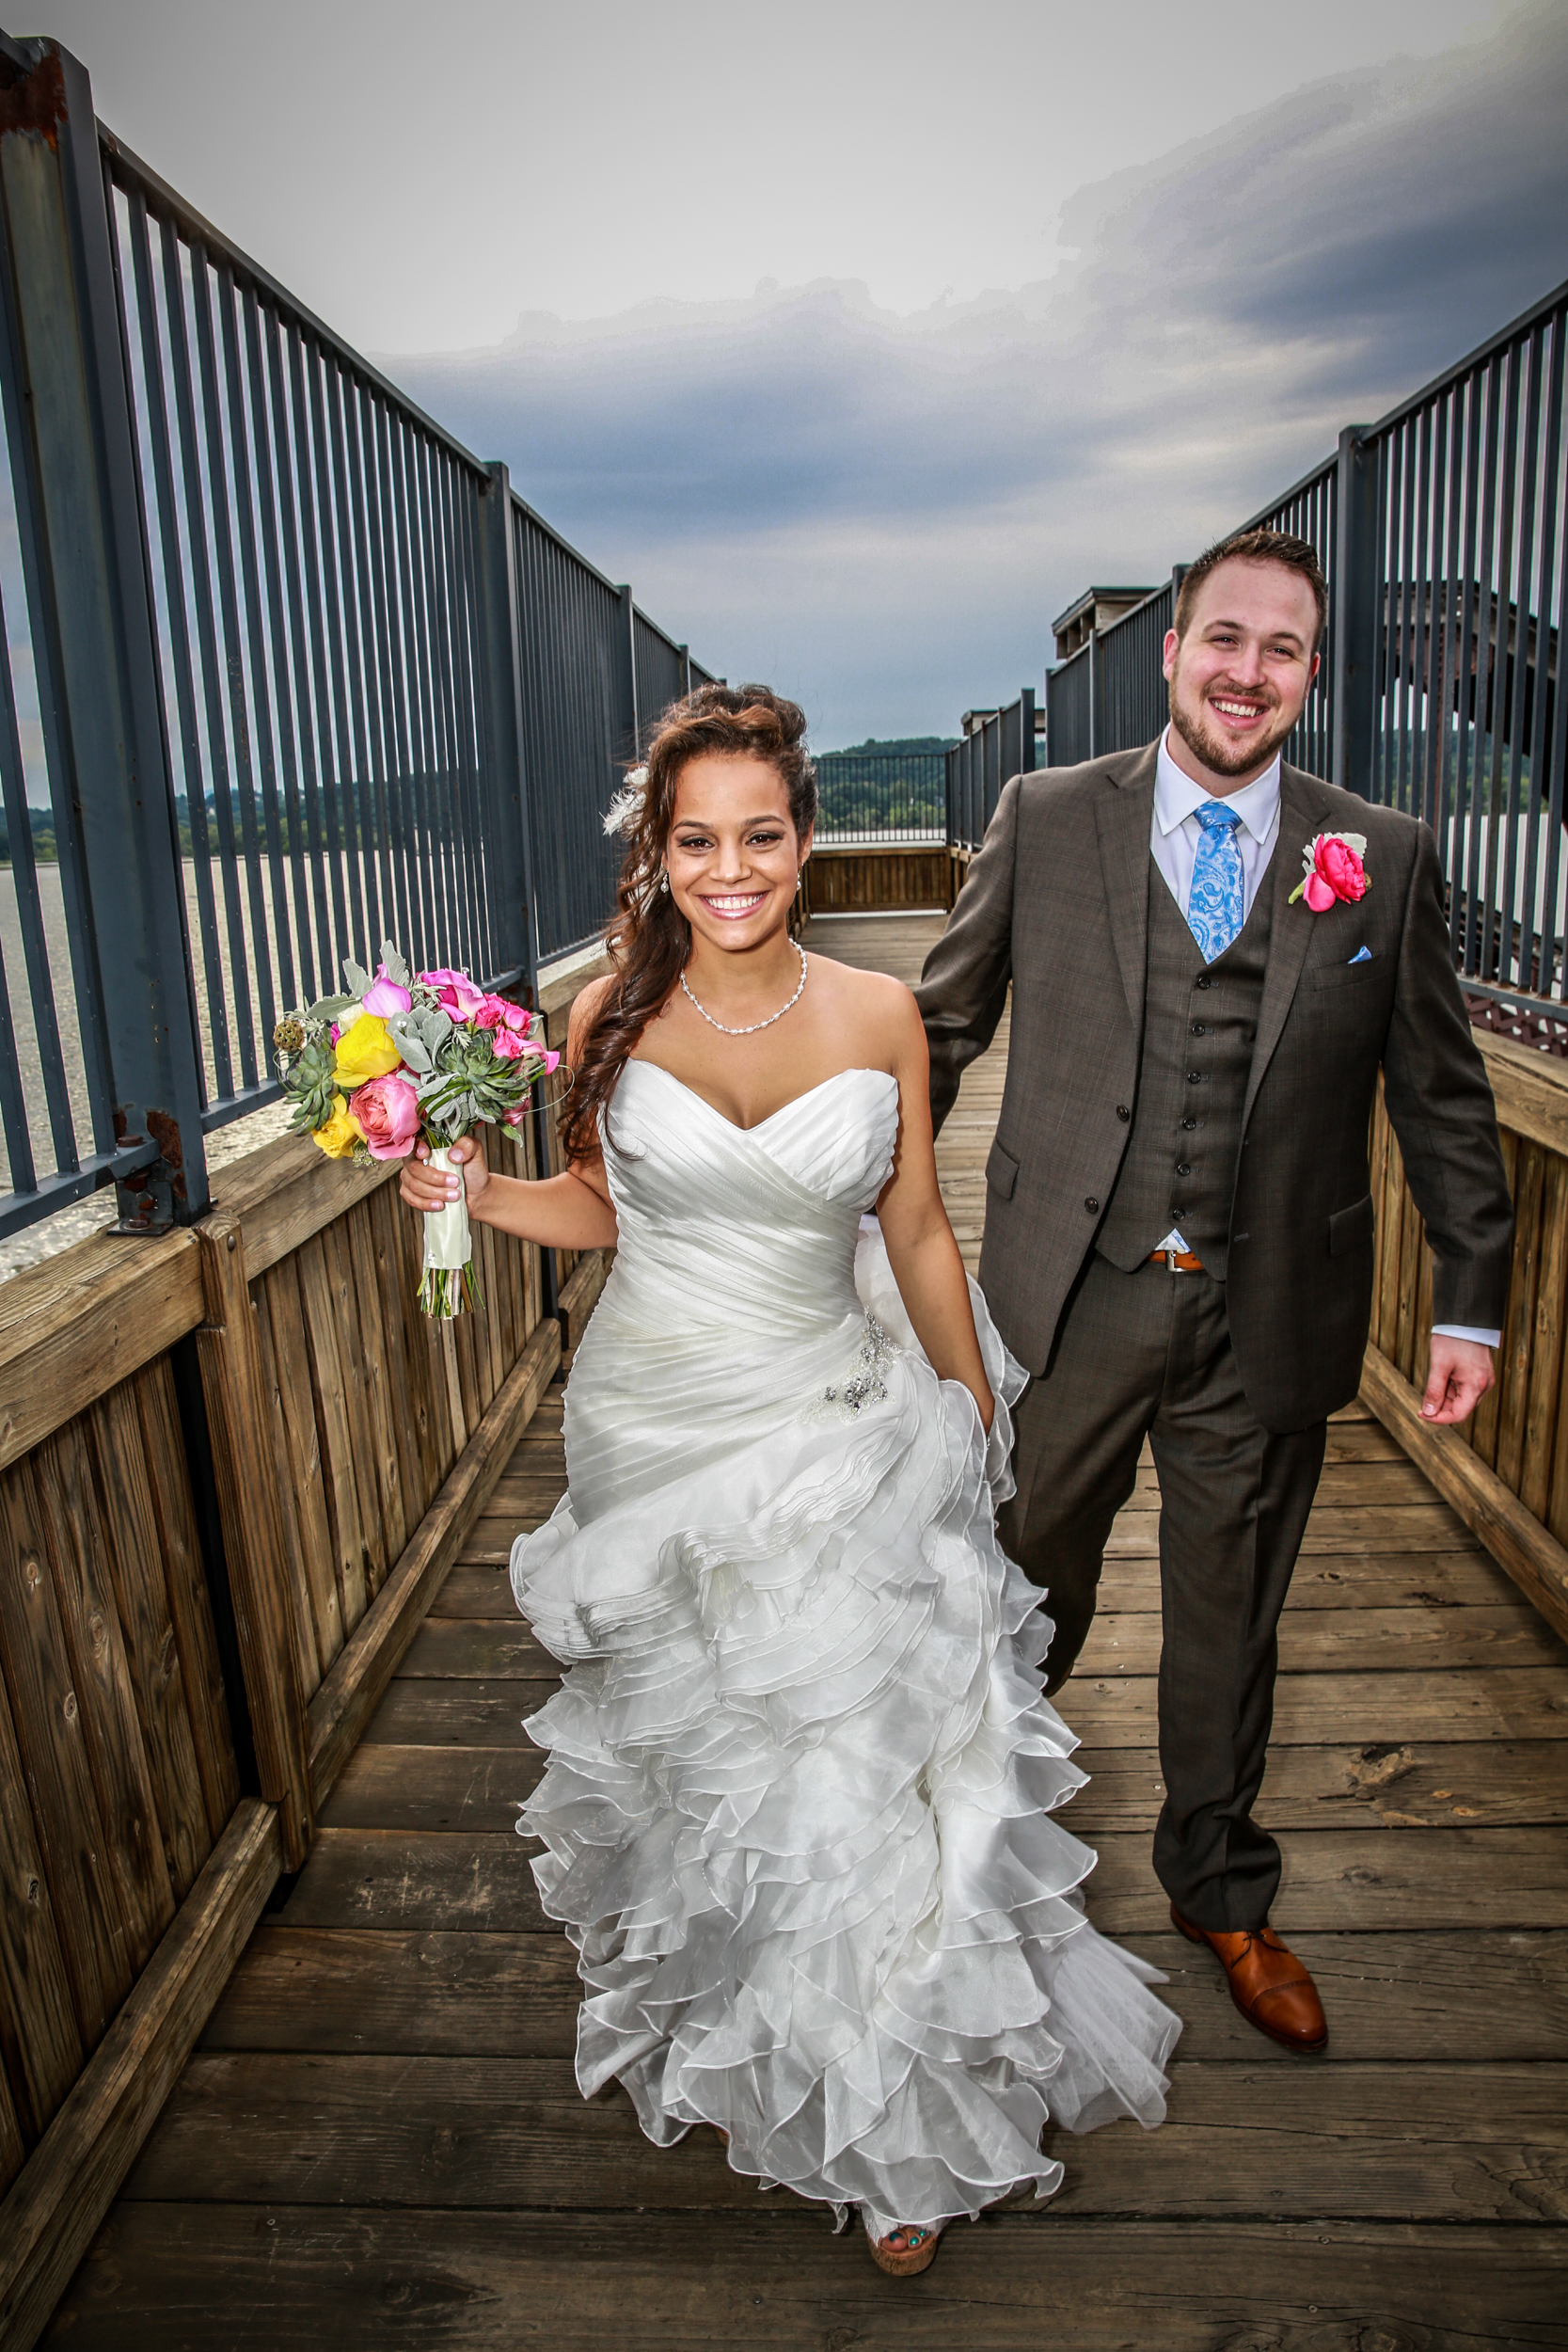 Wedding at the Rhinecliff hotel